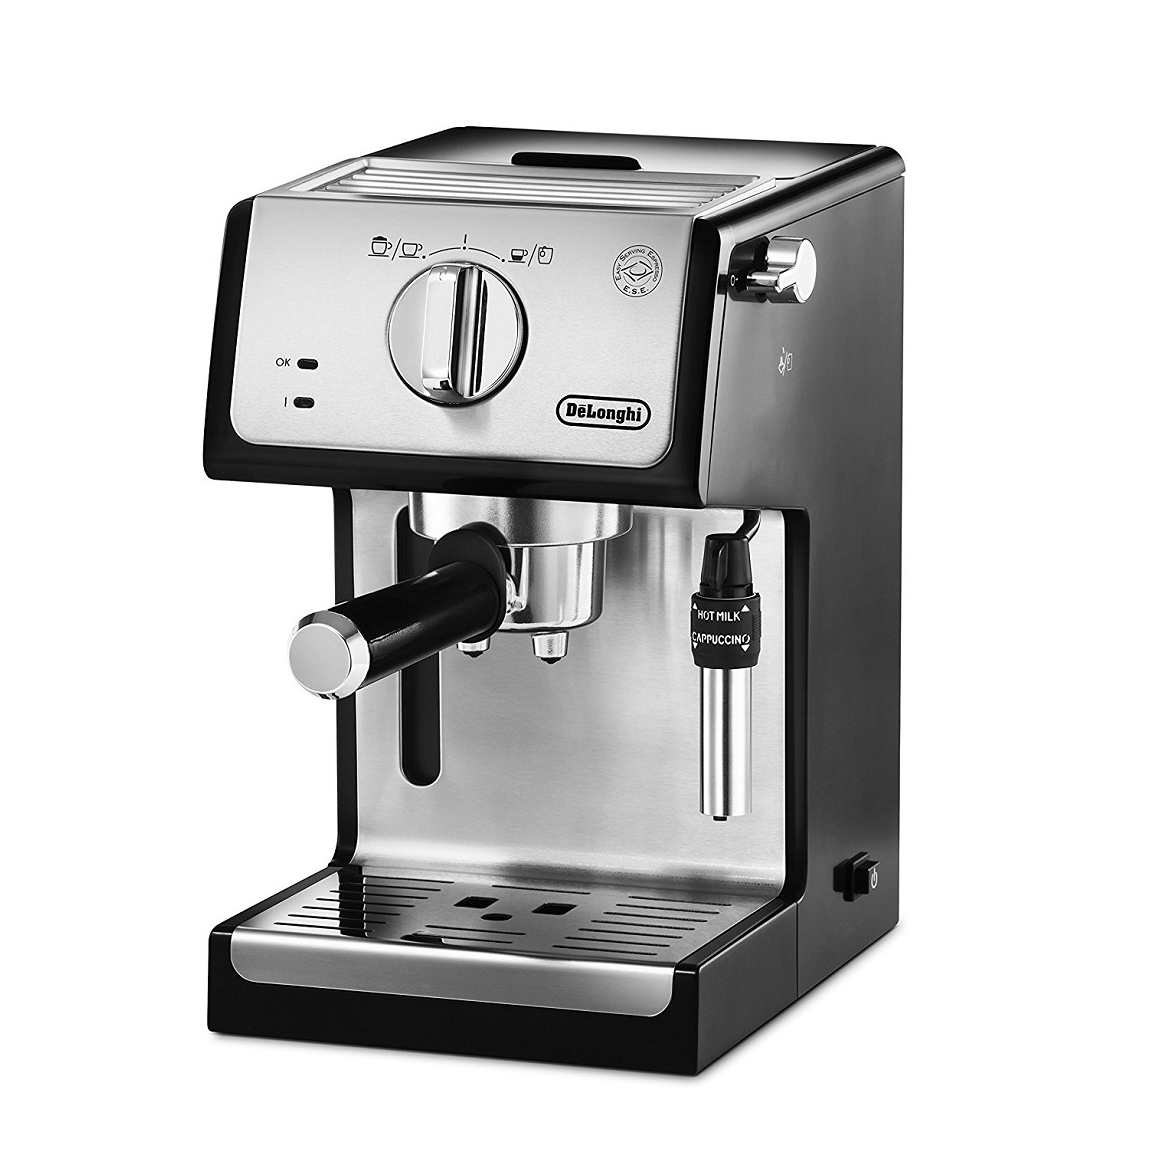 DeLonghi Traditional Pump Espresso & Cappuccino Coffee